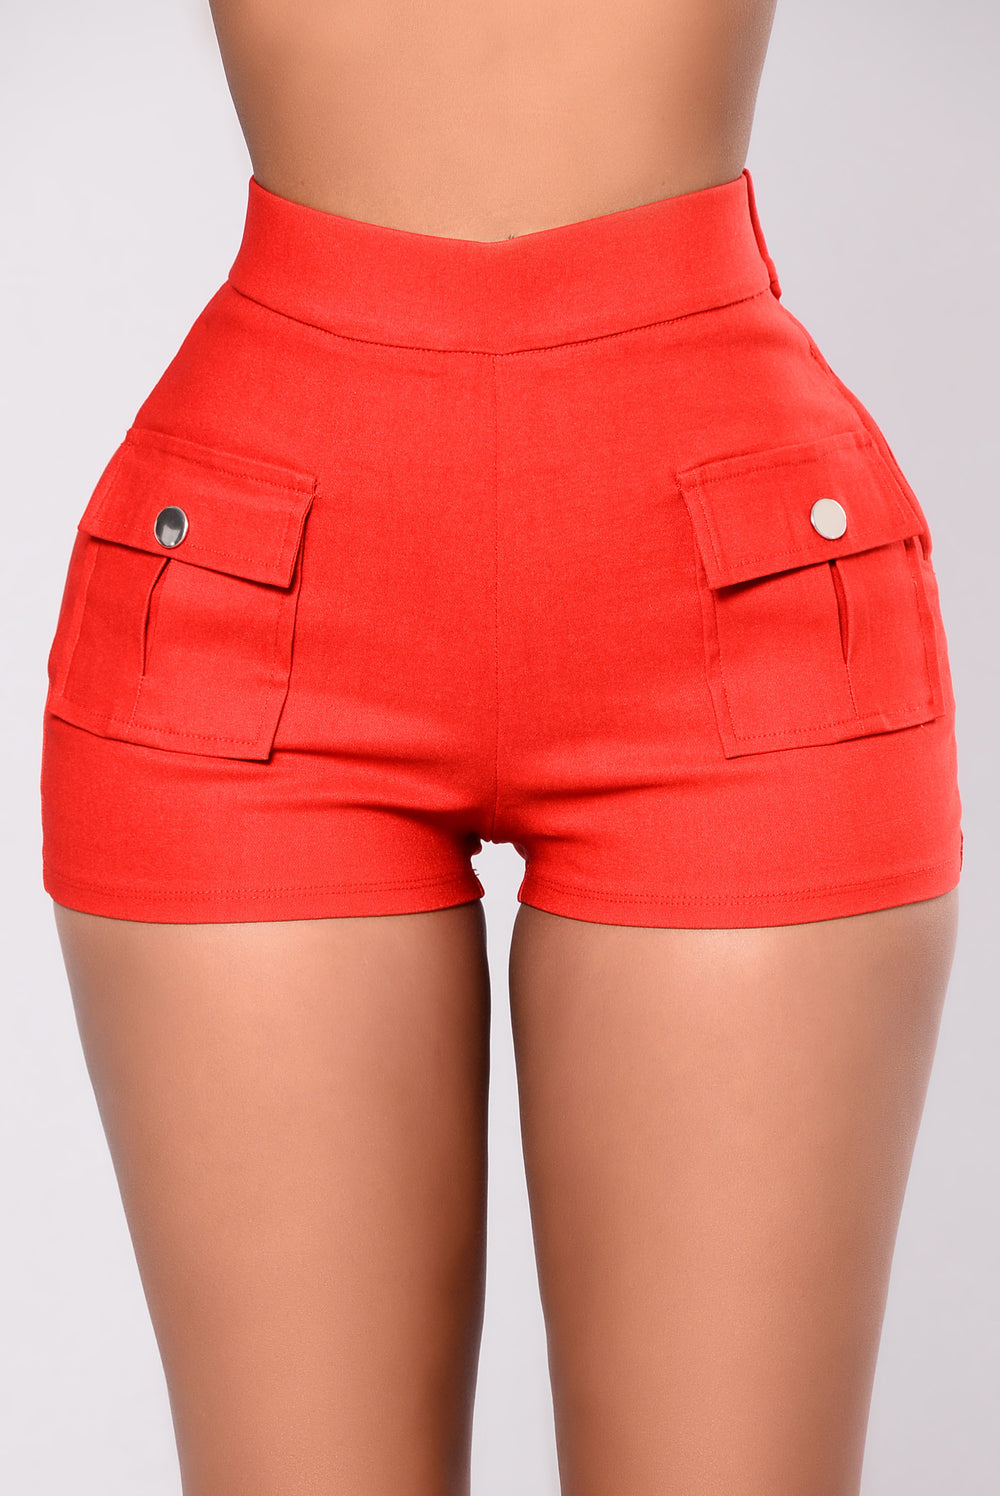 Amaryllis Shorts - Red